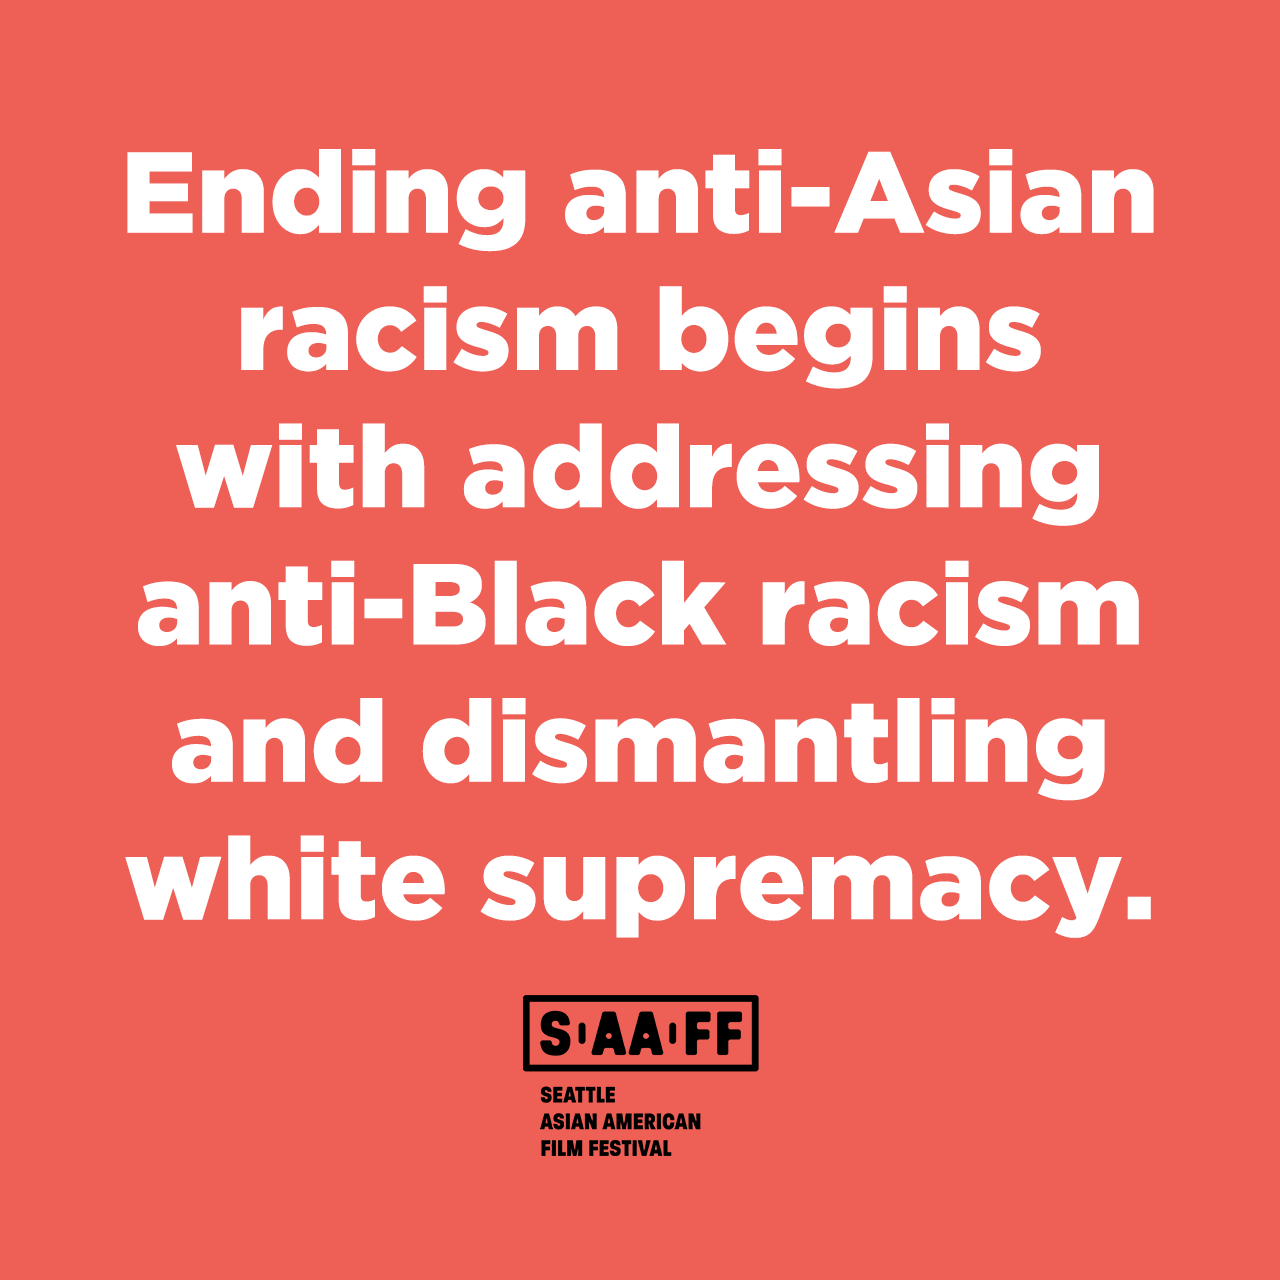 White text over red background reads: Ending anti-Asian racism starts with addressing anti-Black racism and dismantling white supremacy. A black Seattle Asian American Film Festival logo is below the text.